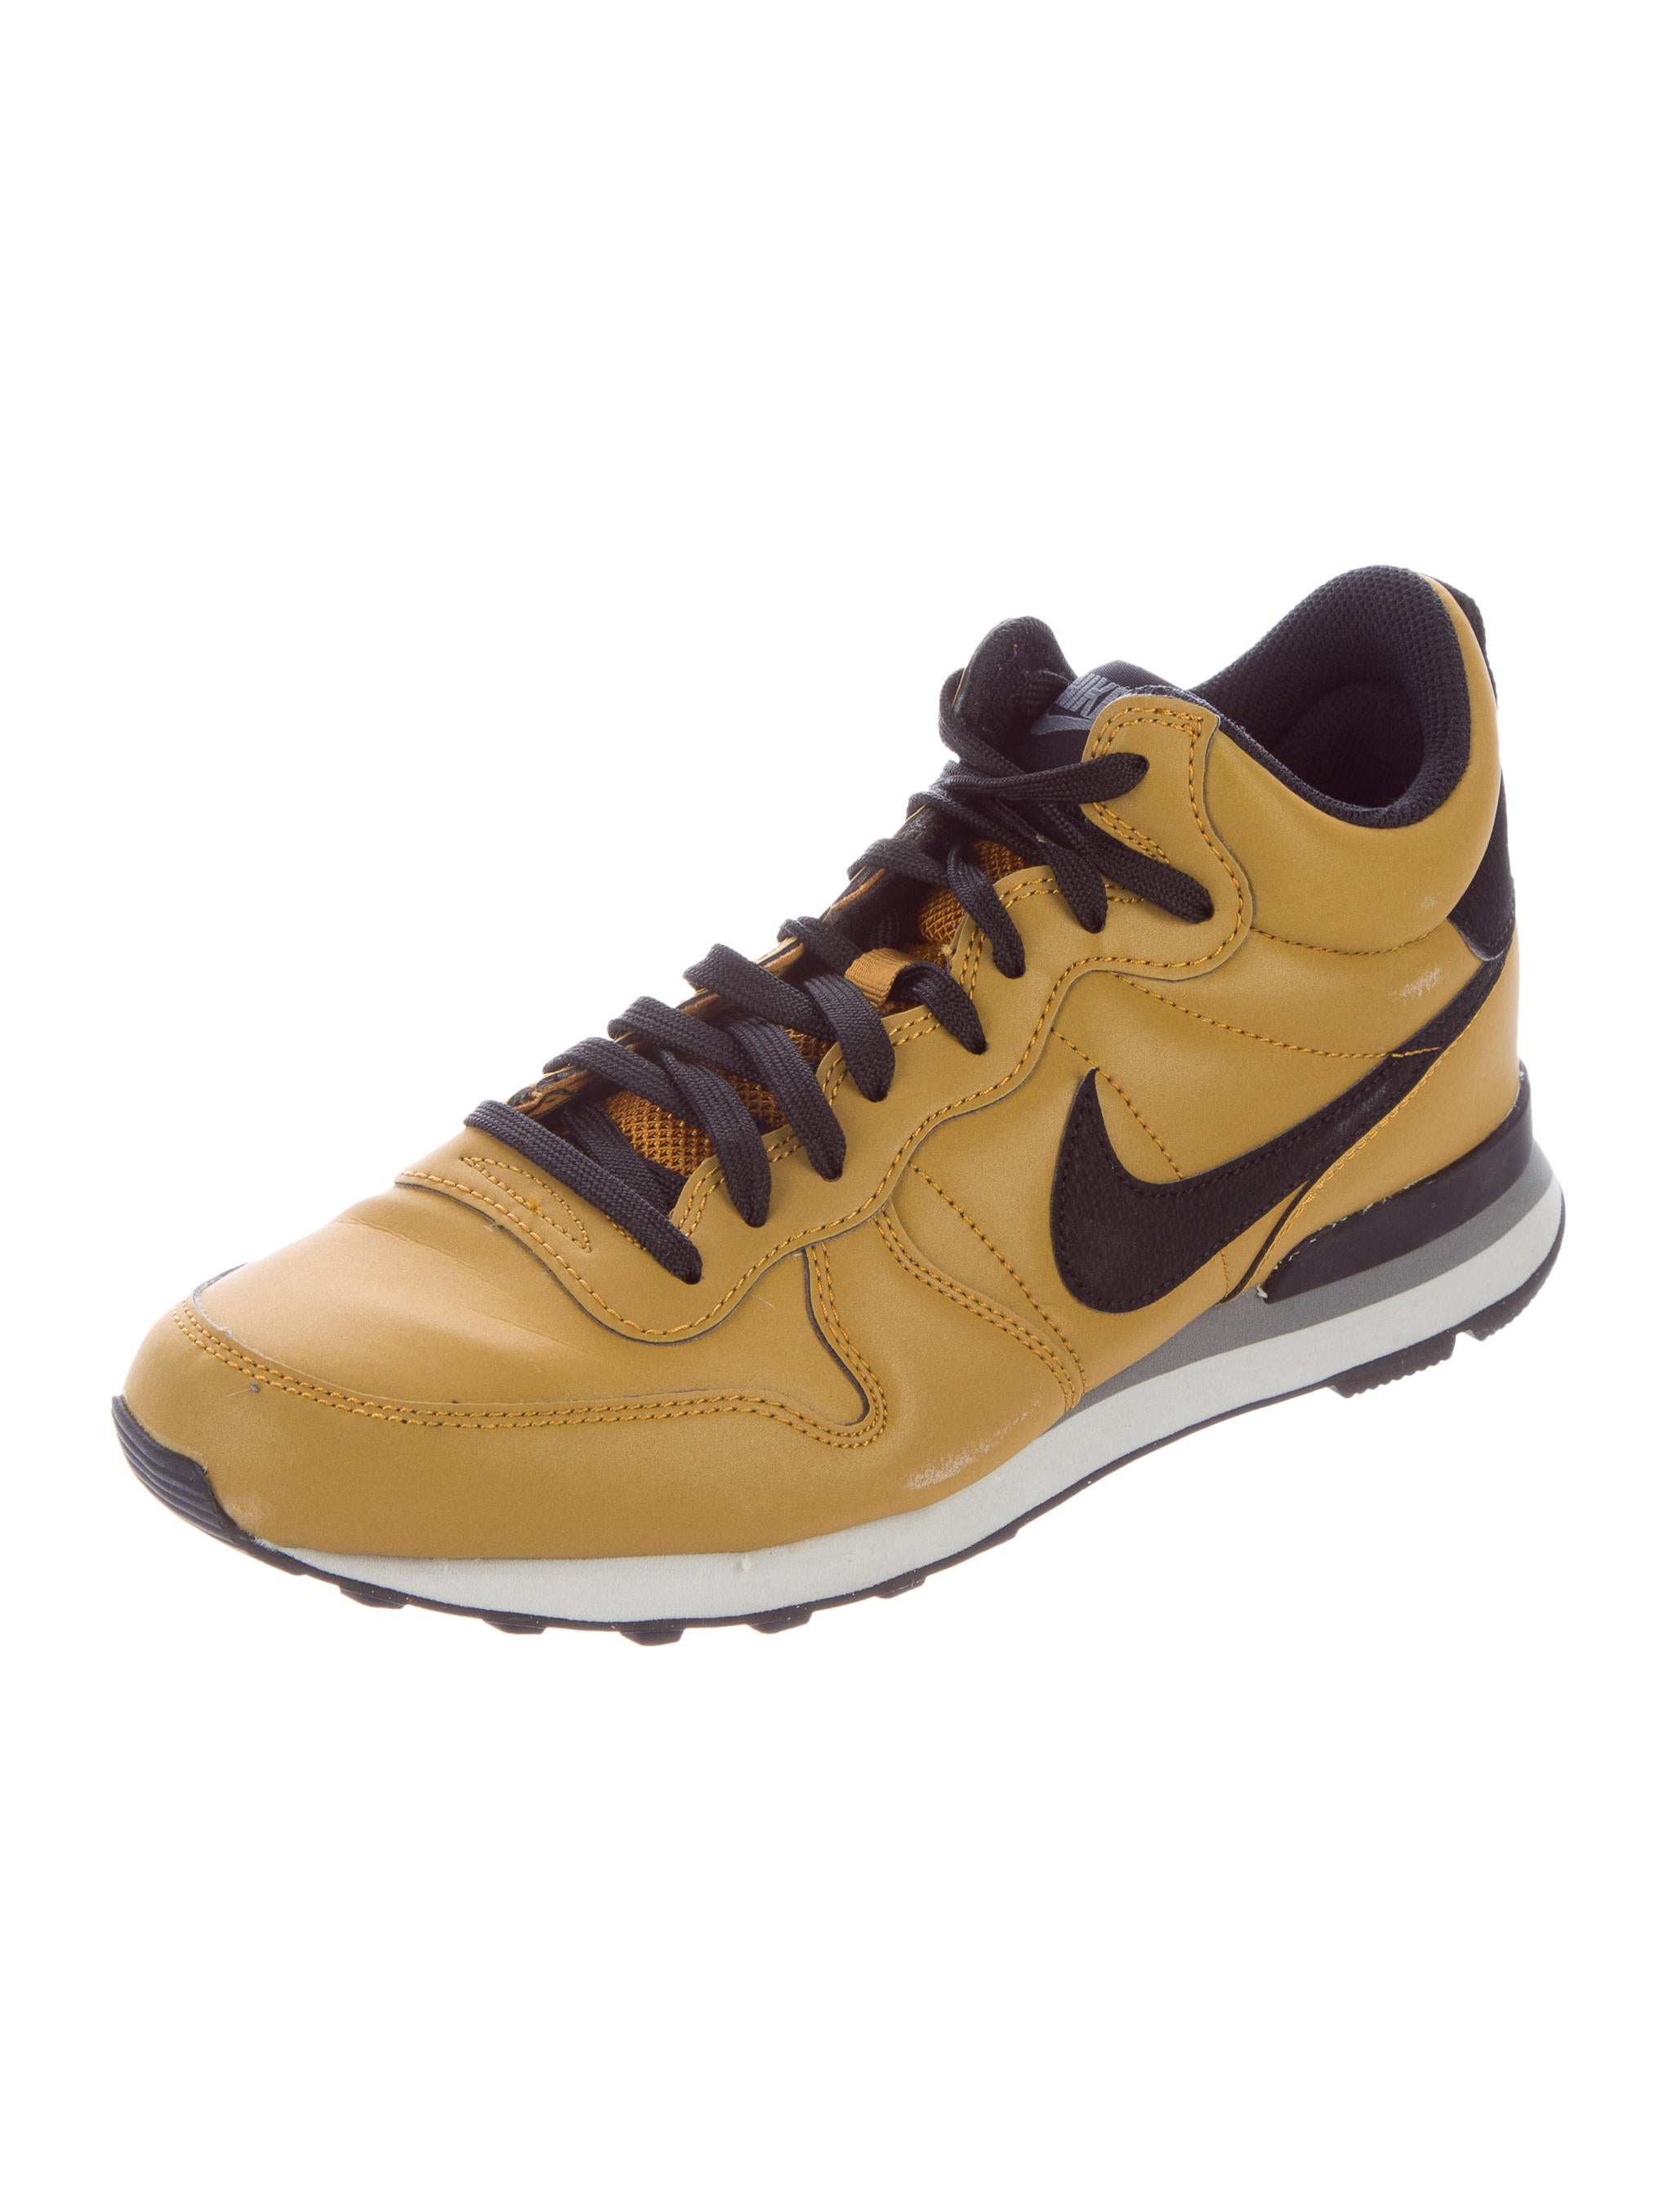 Nike Internationalist Mid Sneakers - Shoes